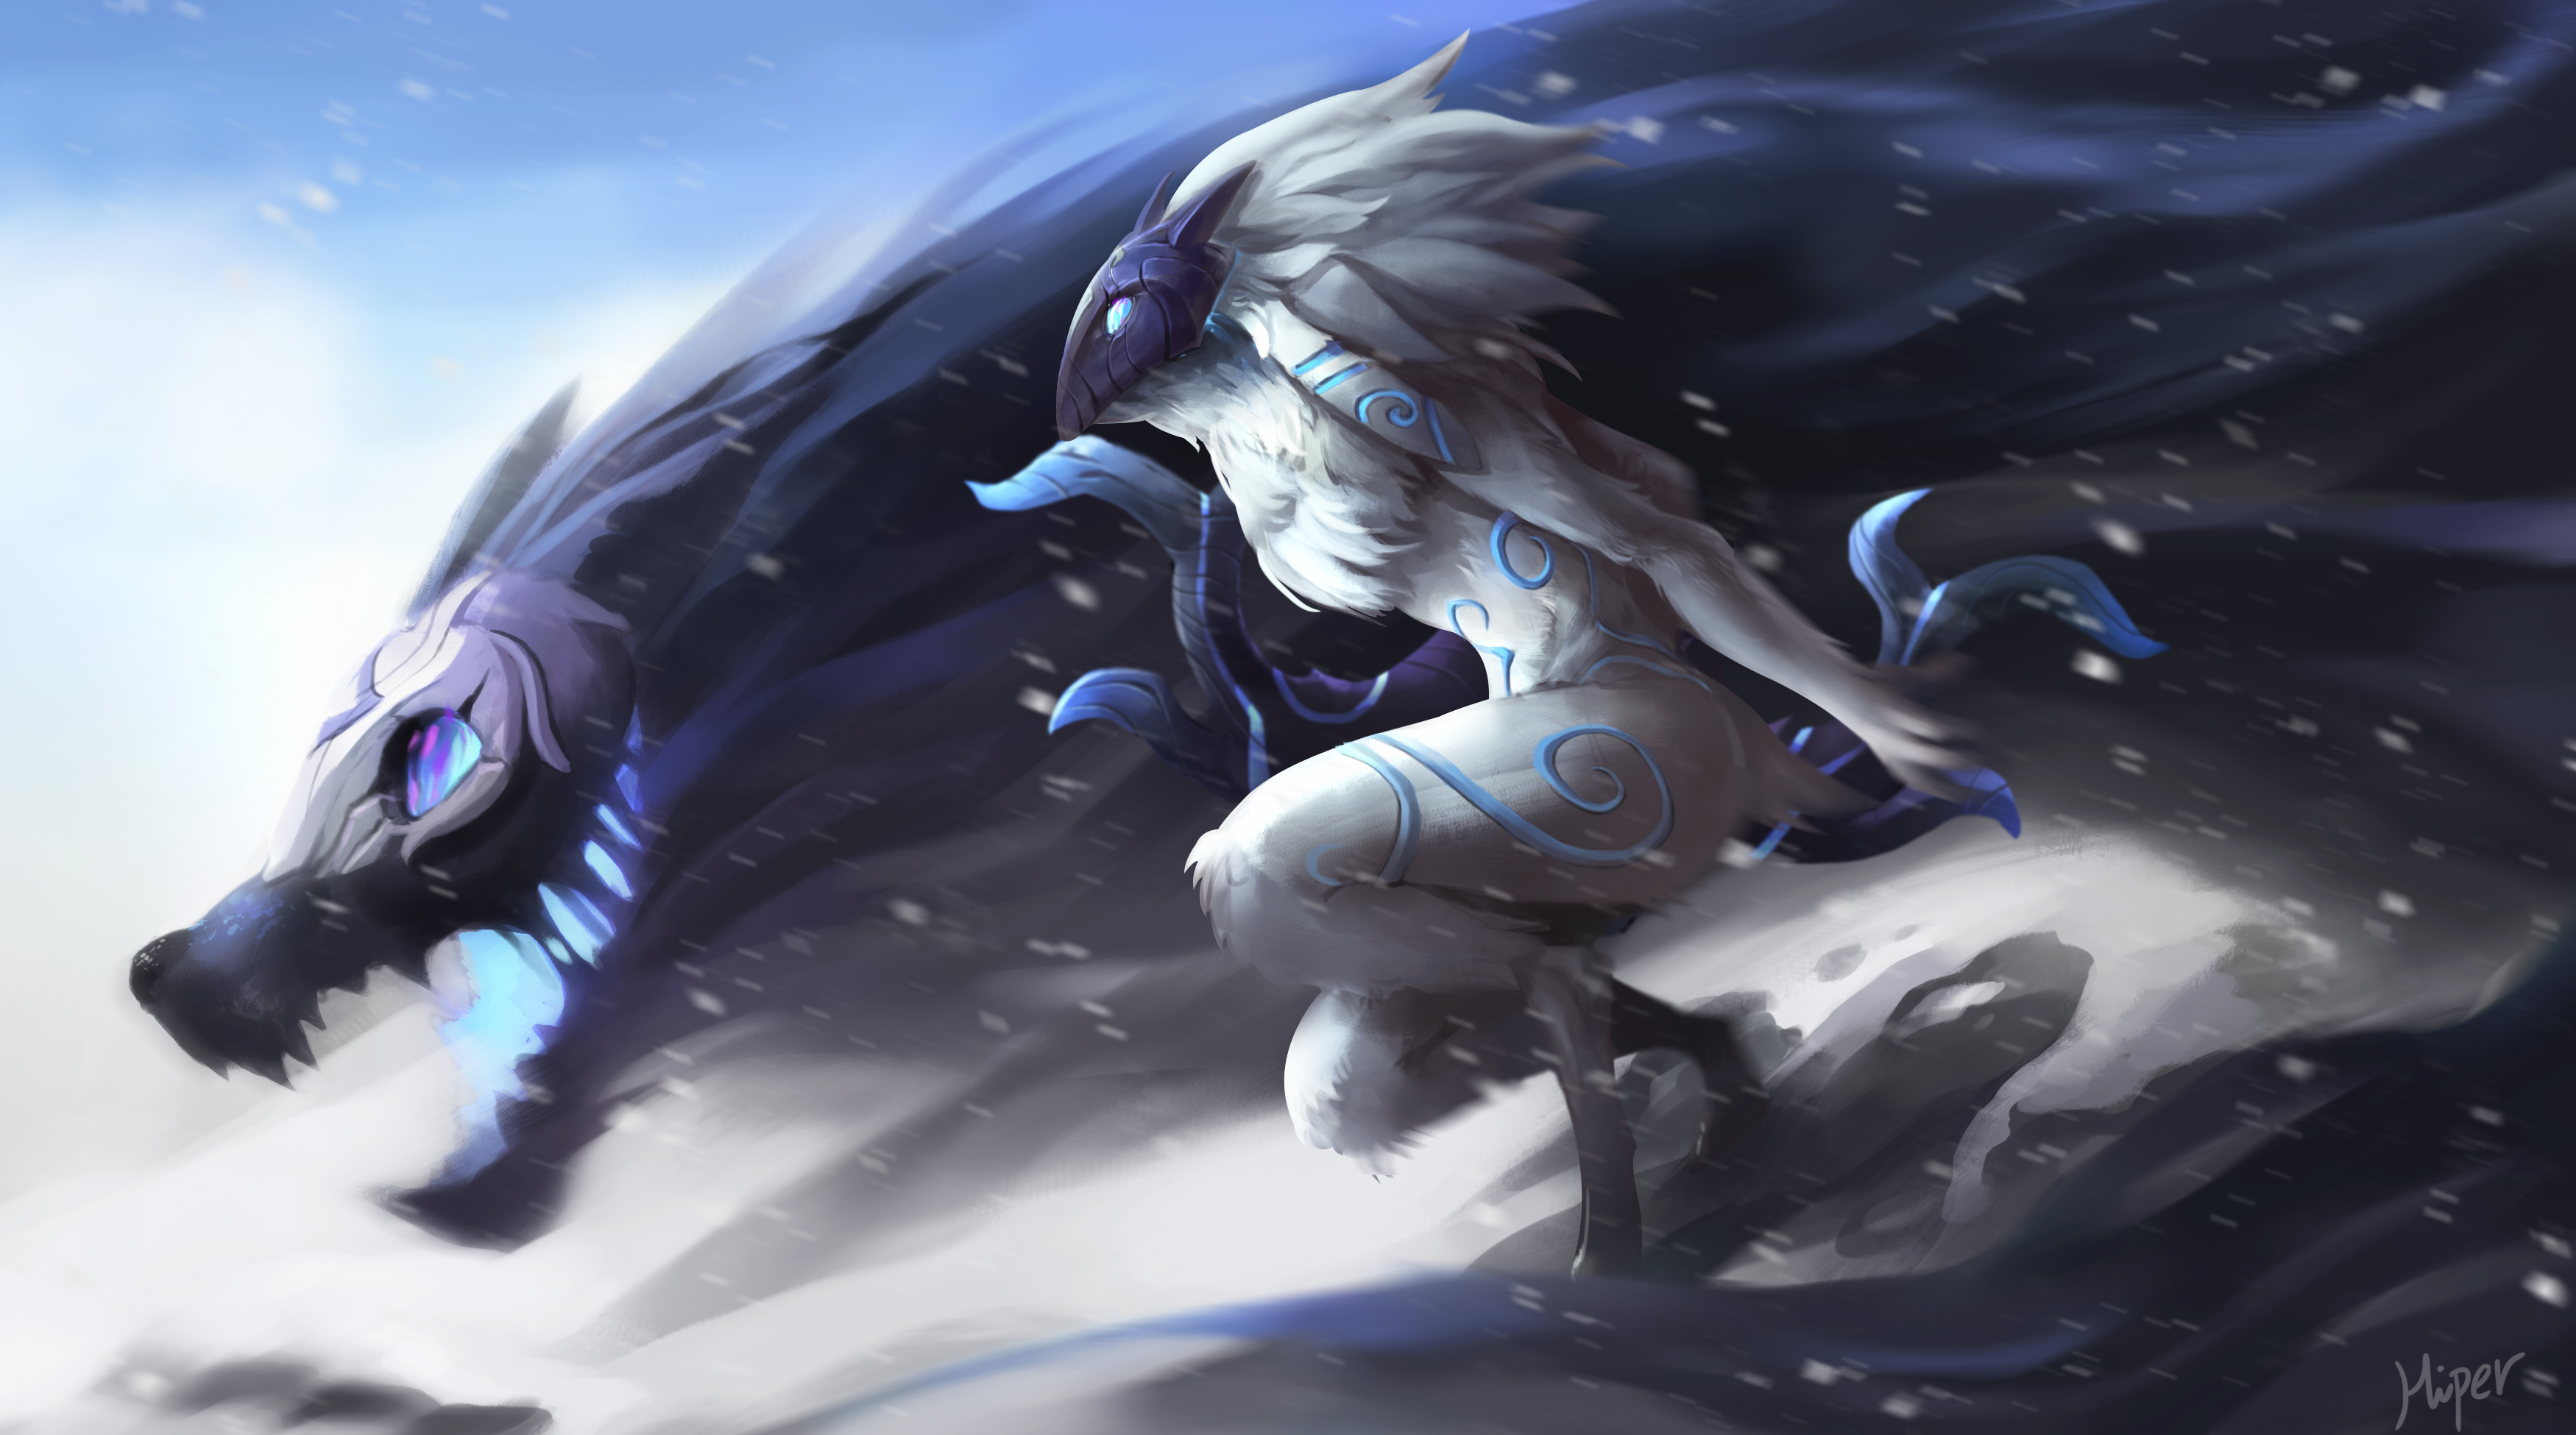 3233 League Of Legends HD Wallpapers | Backgrounds - Wallpaper Abyss